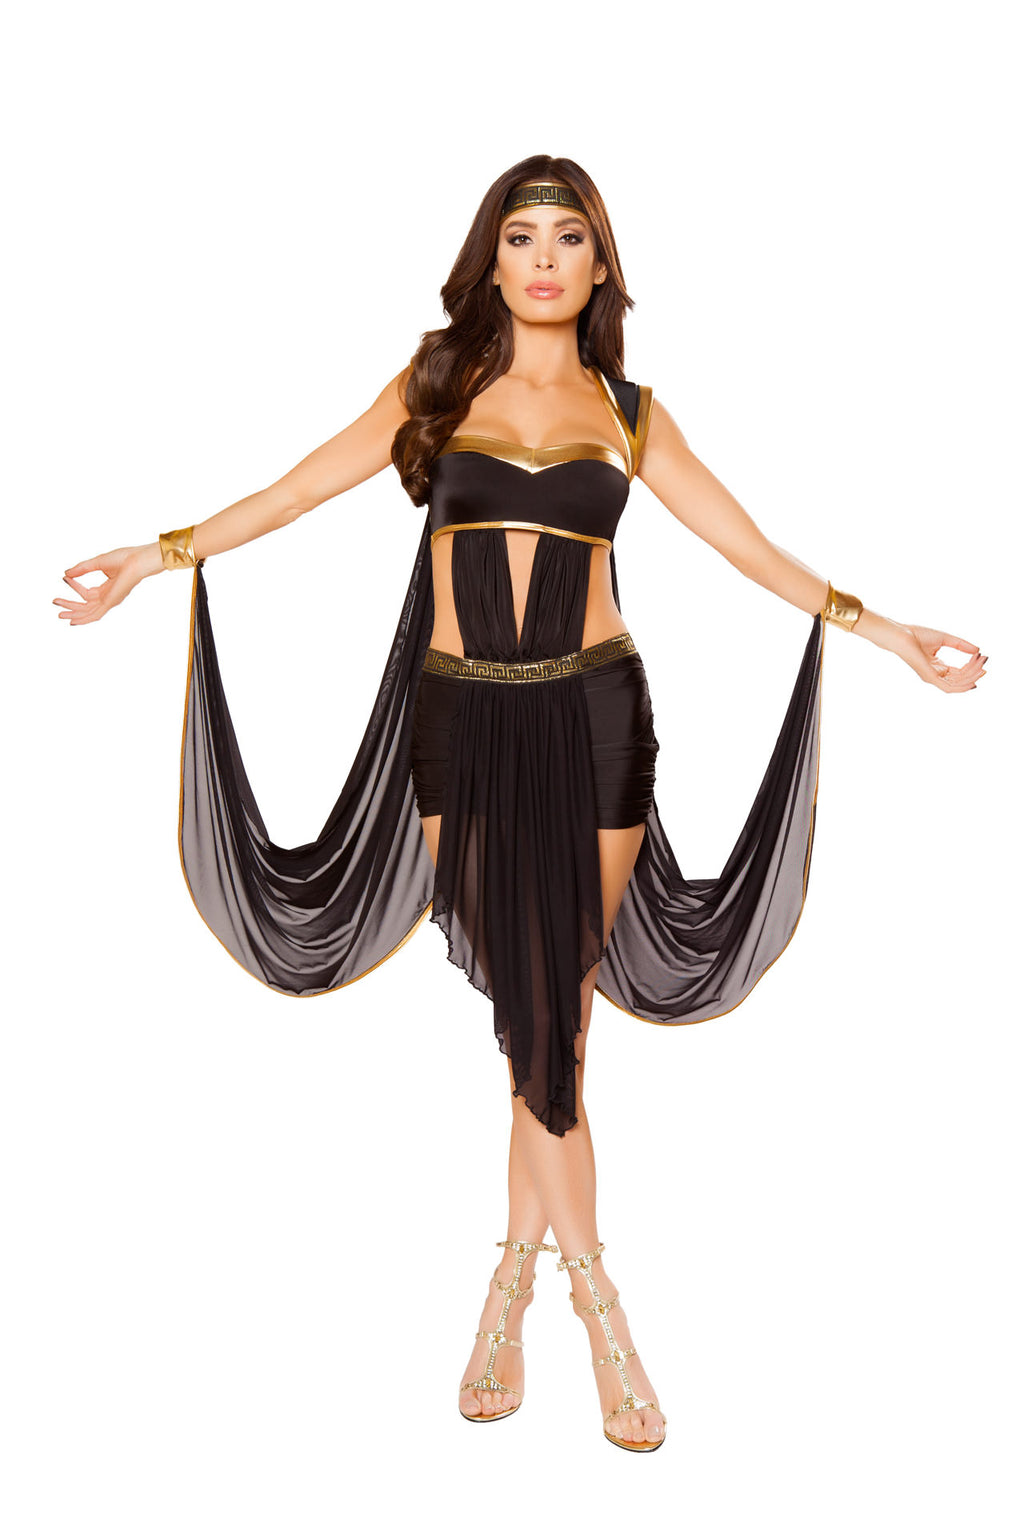 2-PC-Greek-Goddess-Black-Dress-w/-attached-Wristcuffs-&-Headband-Party-Costume-